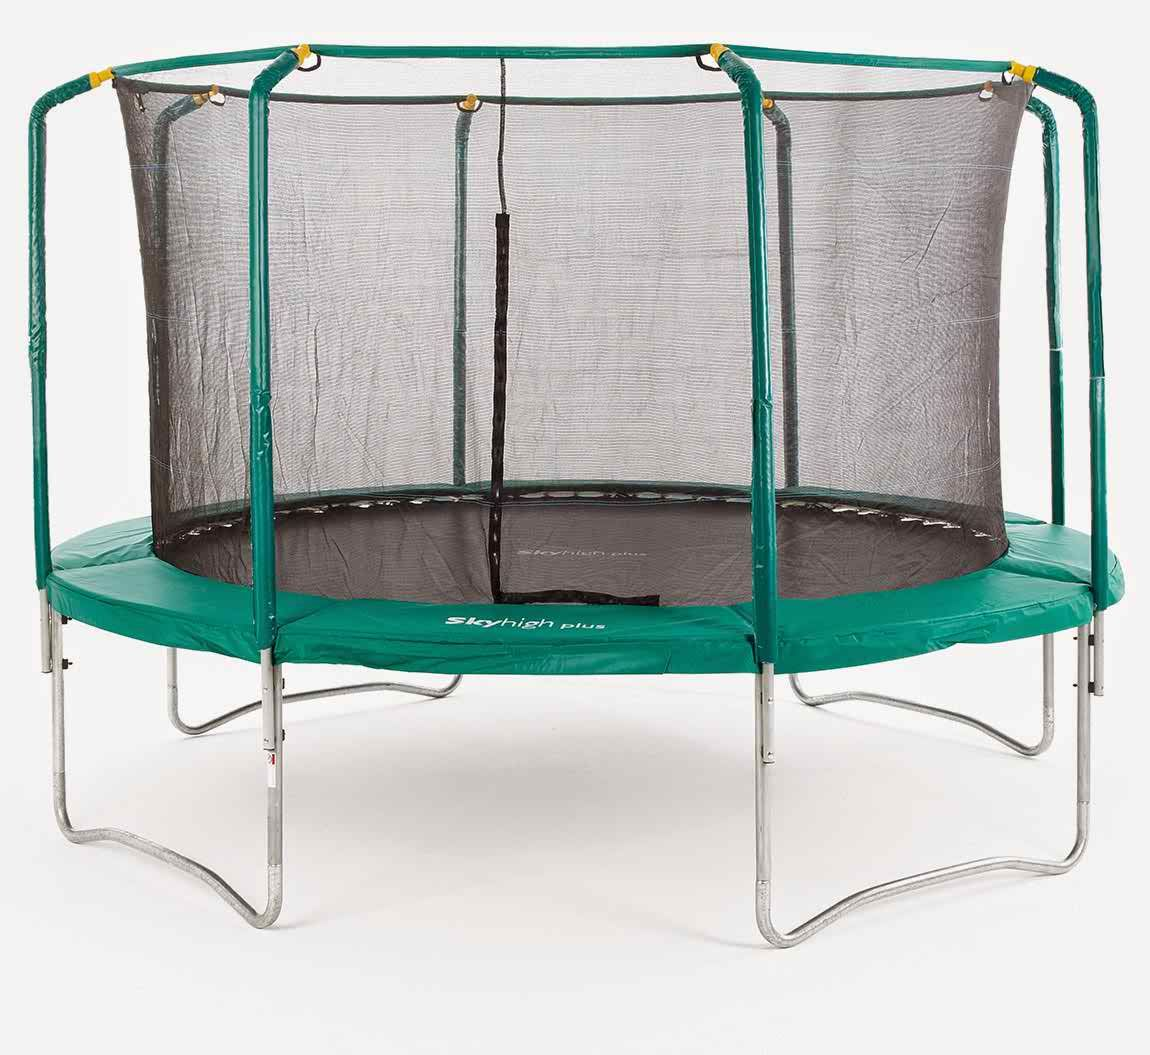 10 Foot Trampoline The Best Size For Your Family Besttrampoline7 Www Trampolinesforyou Com 8ft Trampoline Best Trampoline 10ft Trampoline